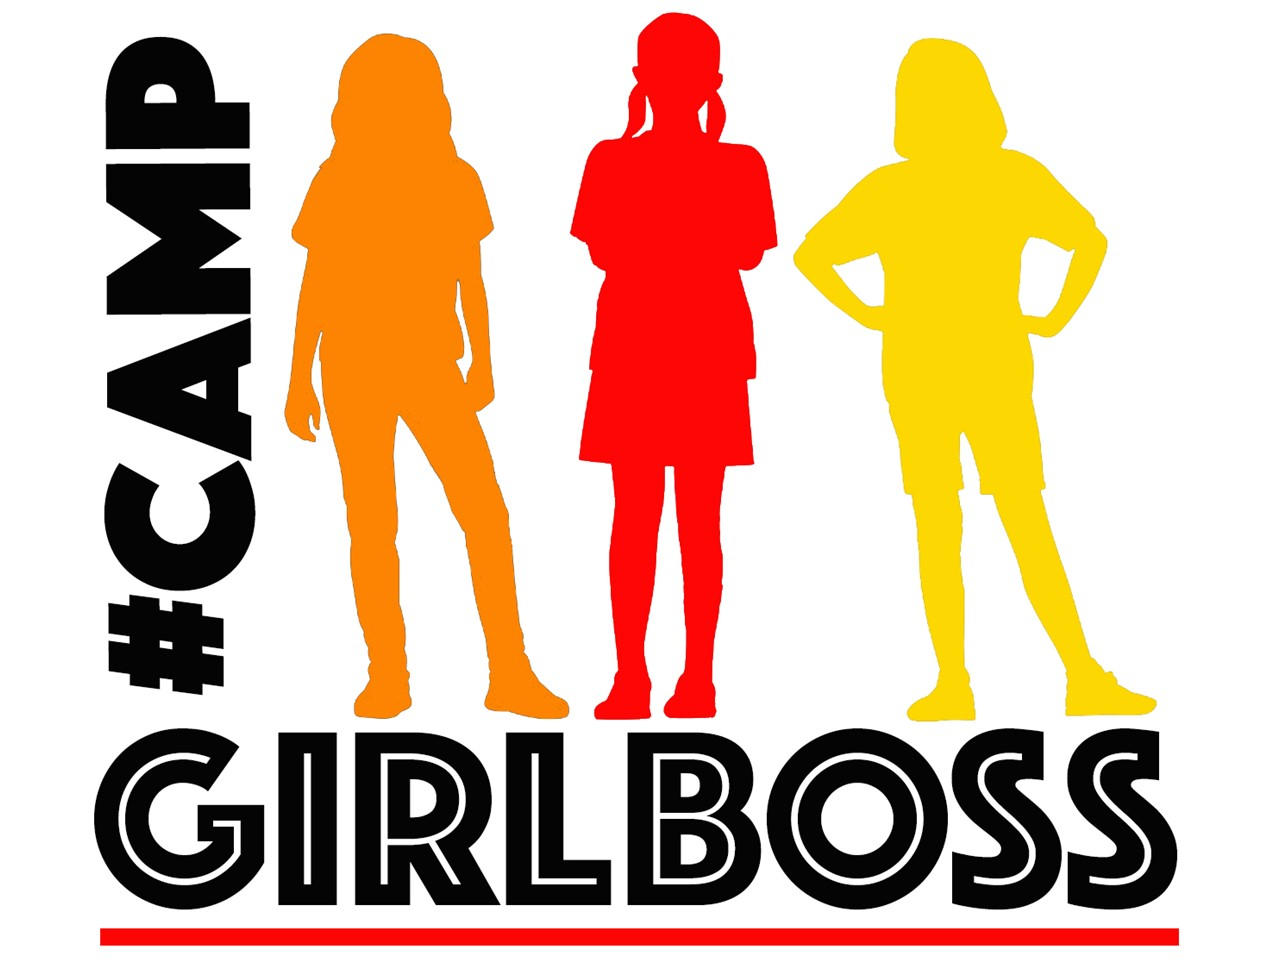 Camp Girl Boss